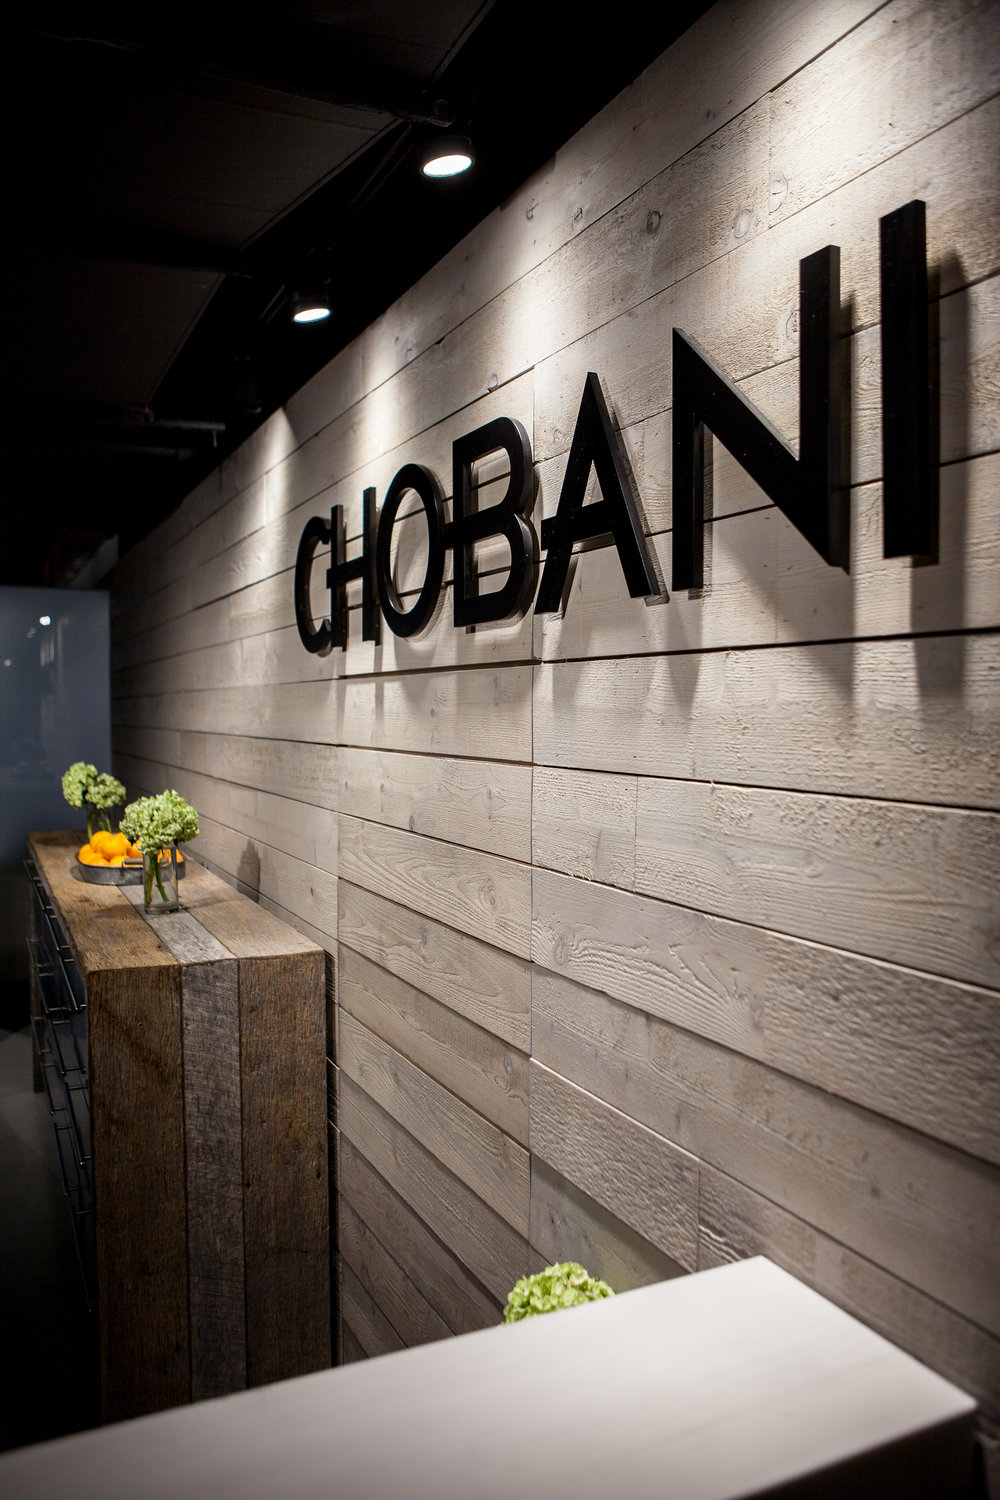 200 Lafayette Street - New York CityChobani Corporate Headquarters